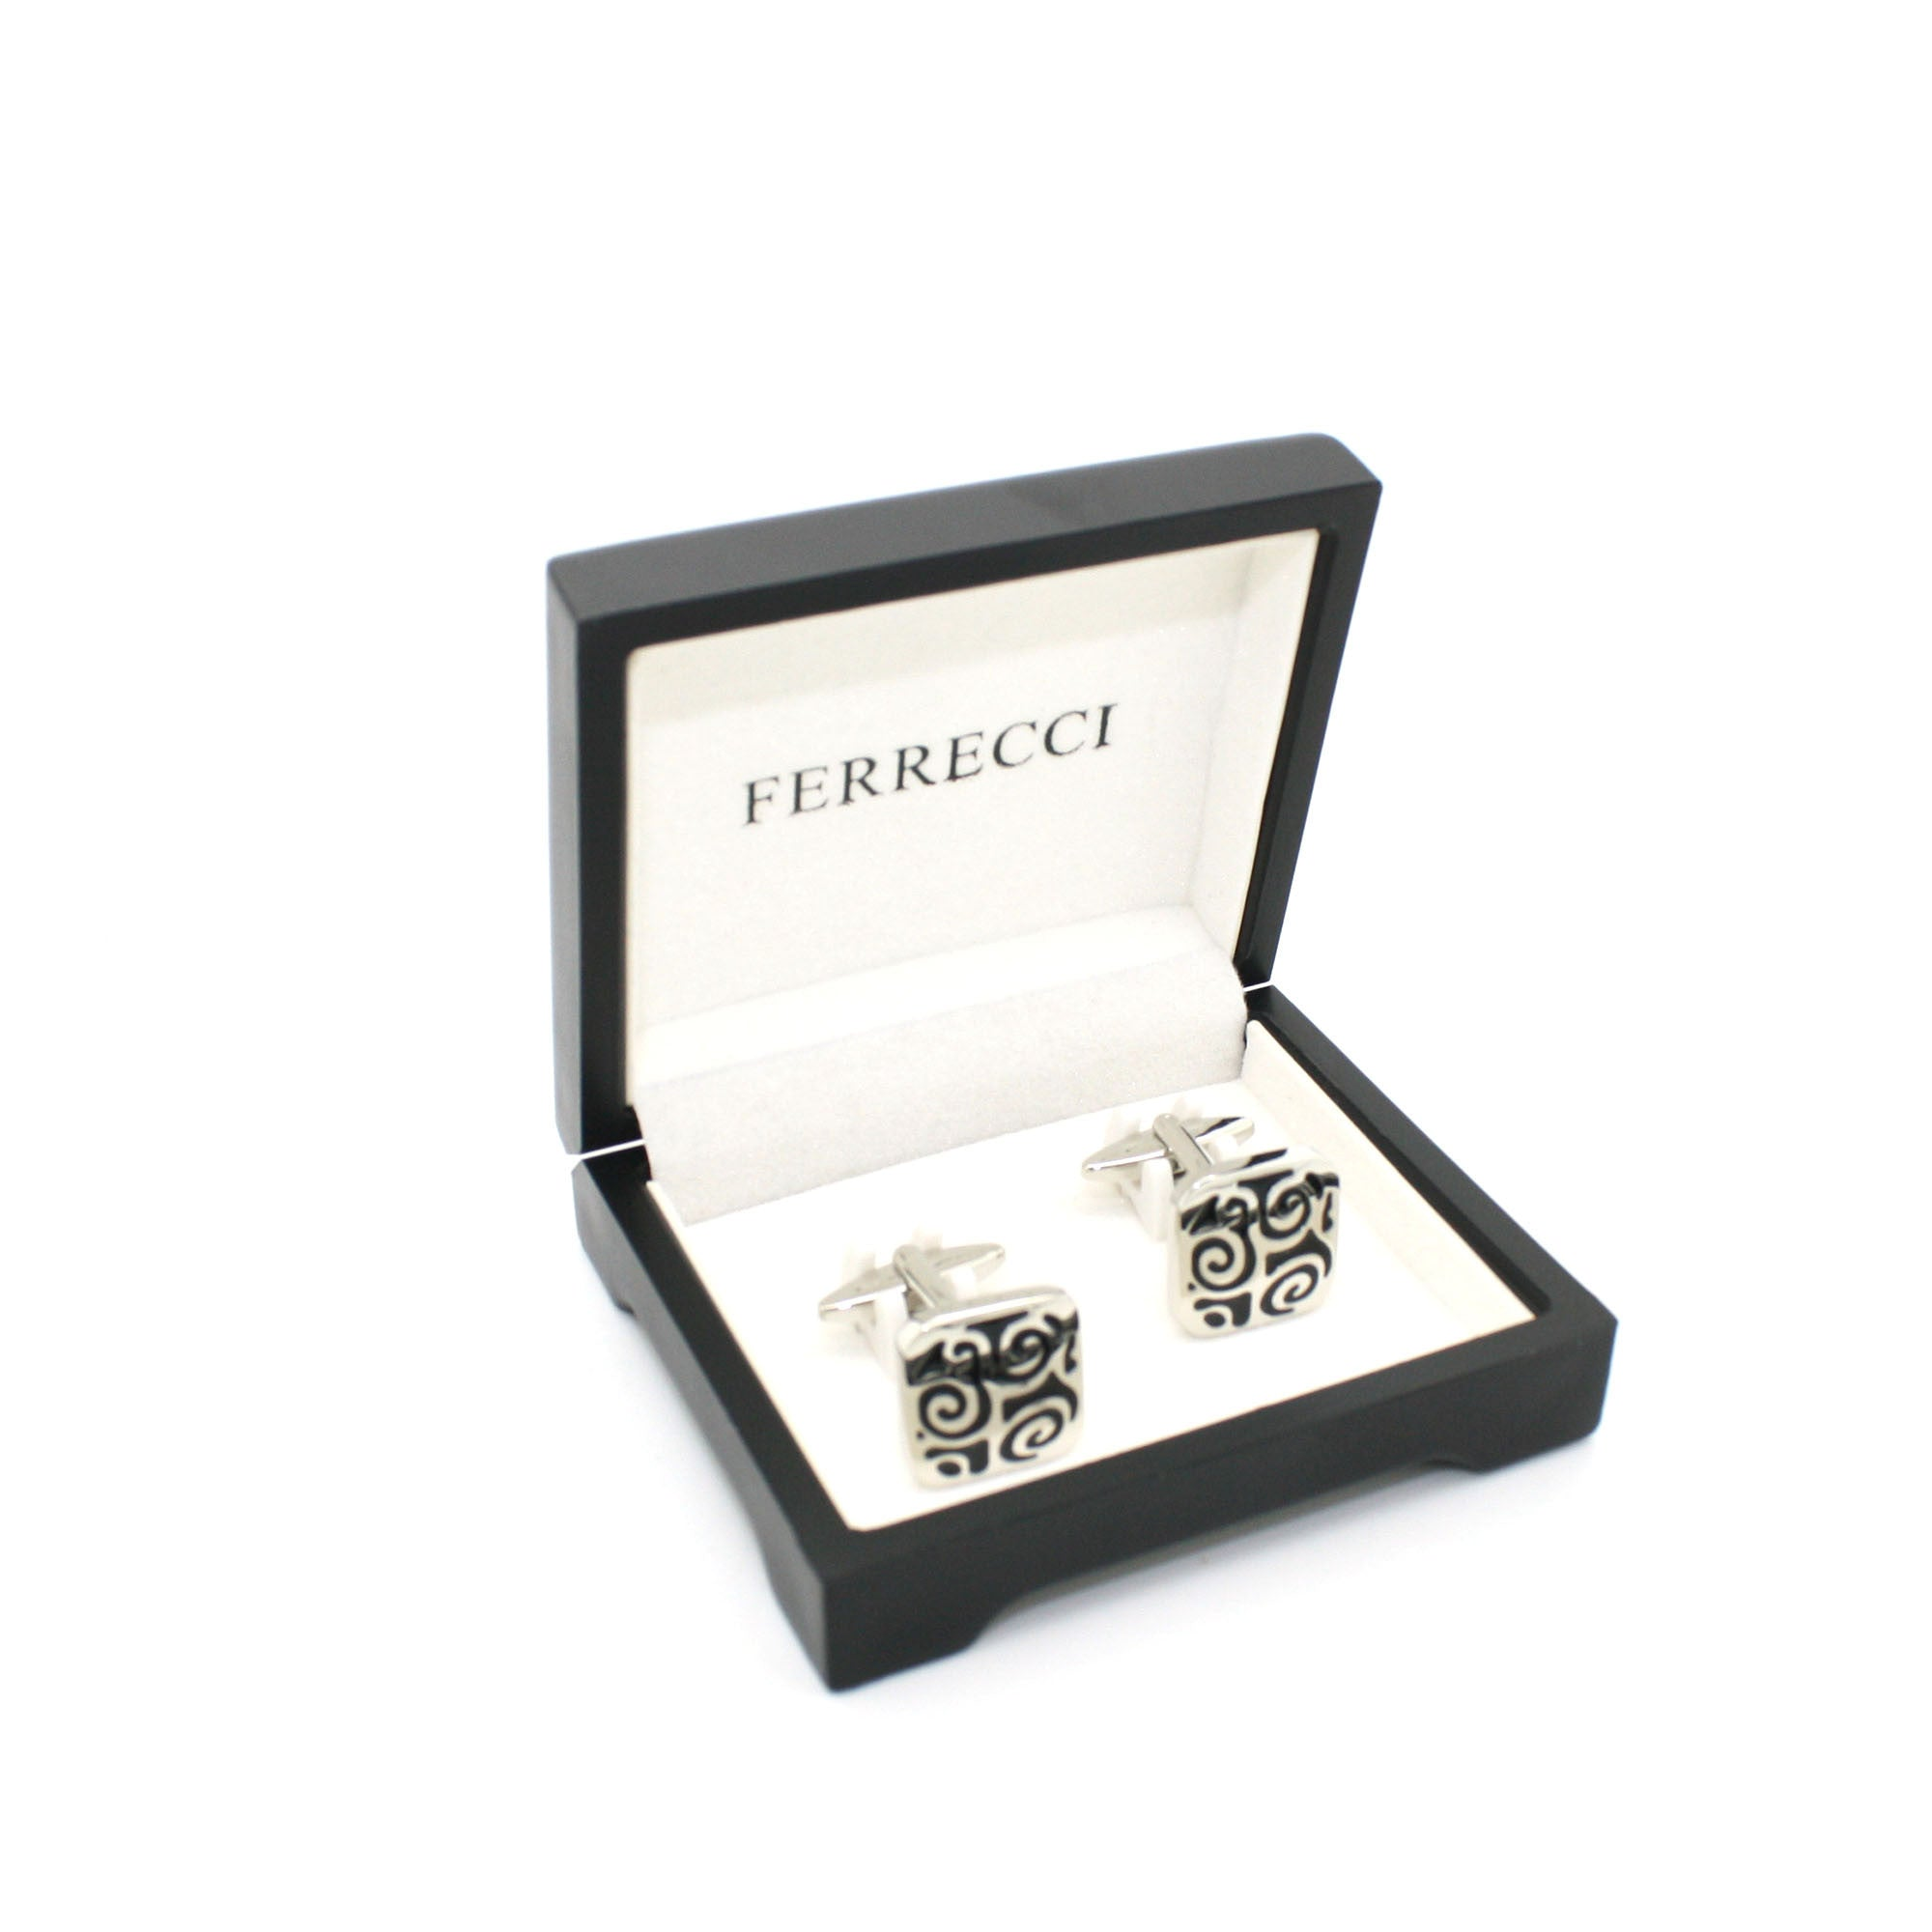 Silvertone Black Design Cuff Links With Jewelry Box